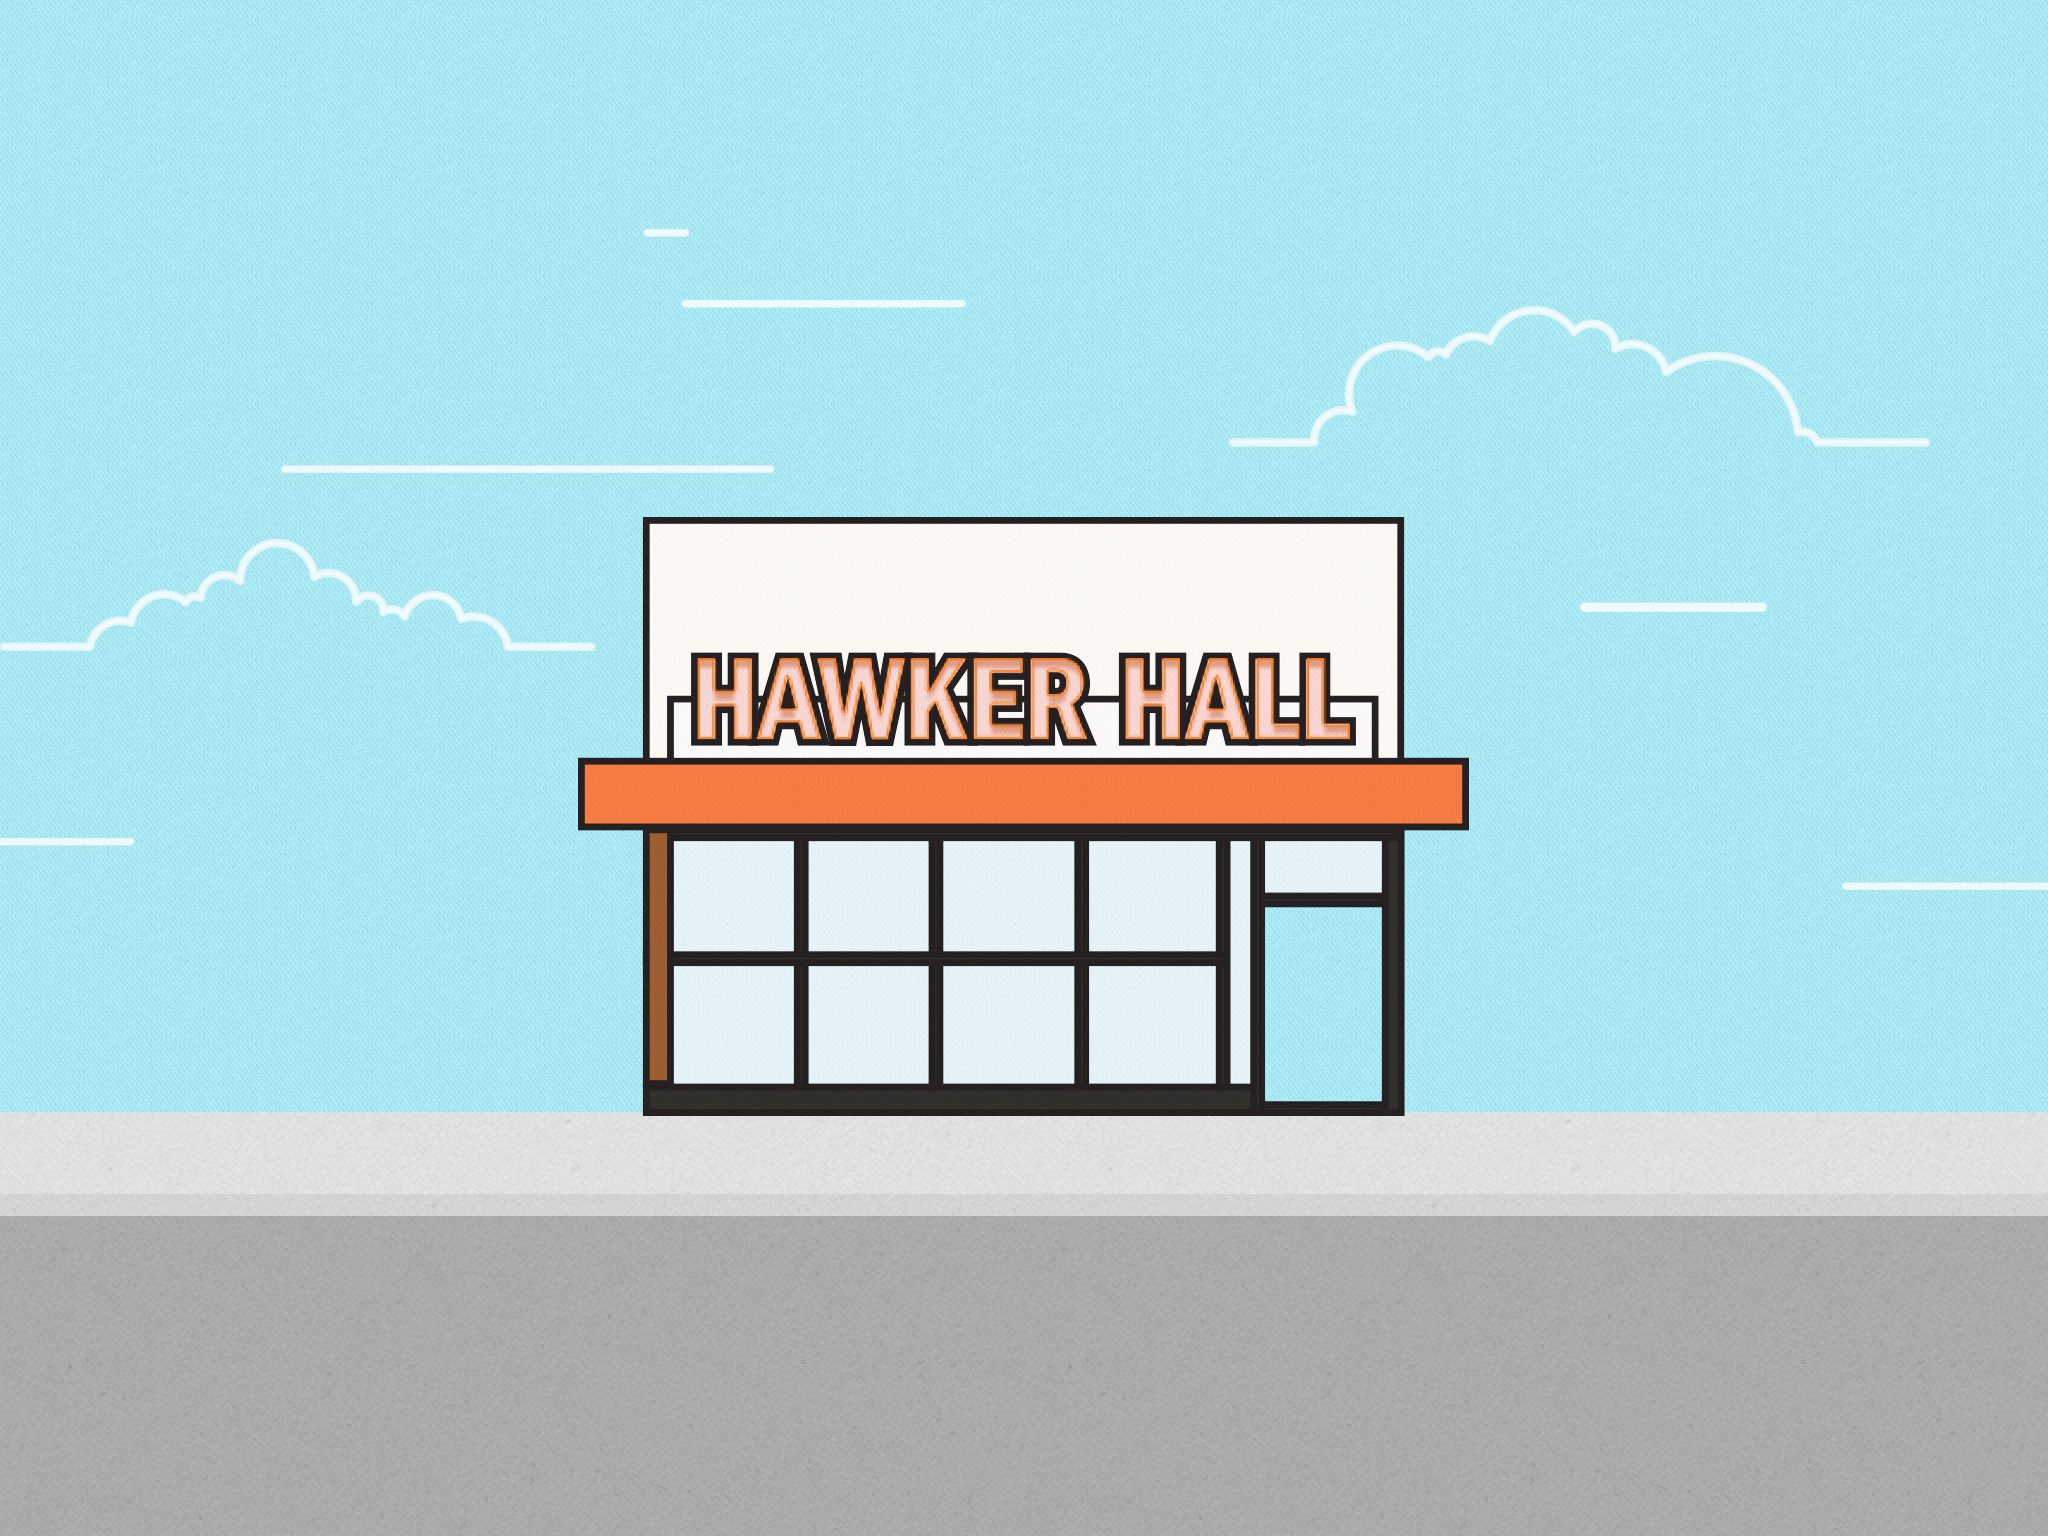 Hawker Hall Illustration